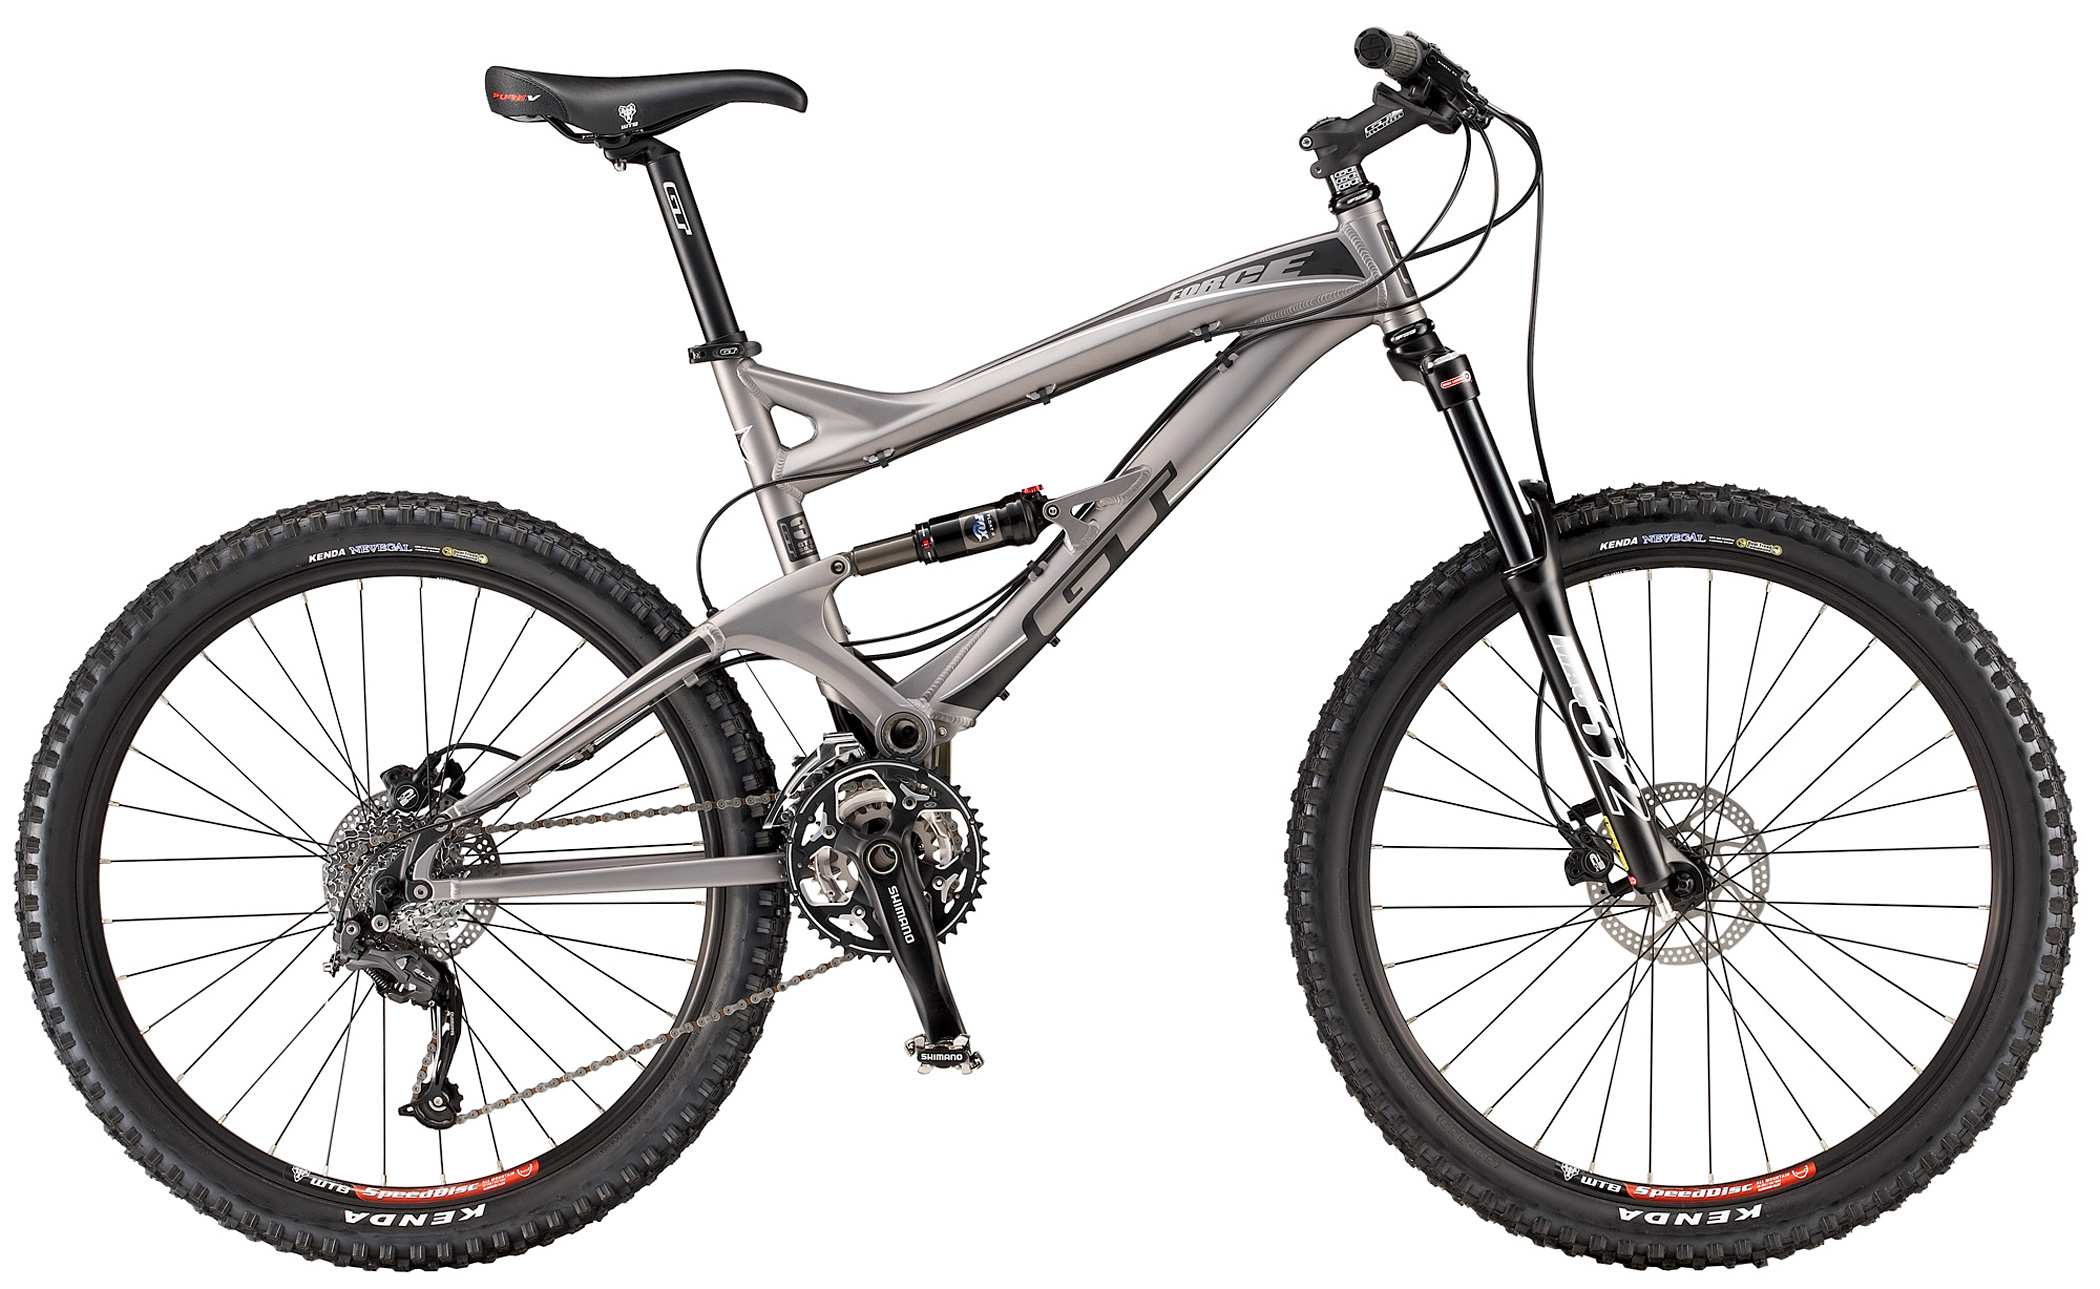 Gt Full Suspension Mountain Bike